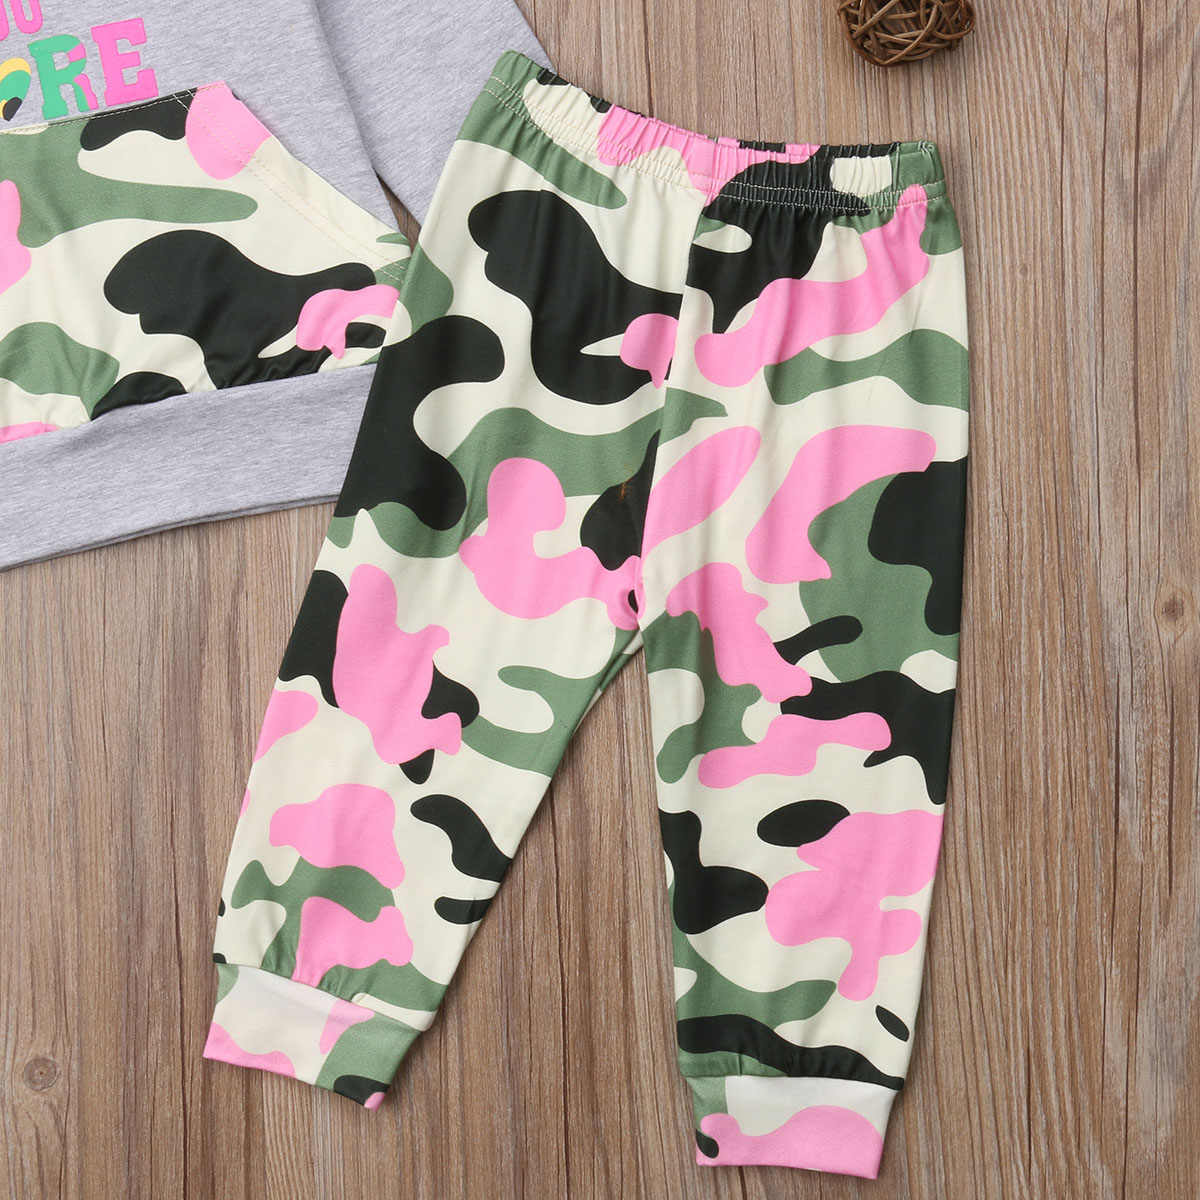 43399093f7465 ... CANIS Casual Toddler Kids Baby Girls Camo Hoodies Tops Camouflage Pants  Leggings Outfits Sets Clothes 1